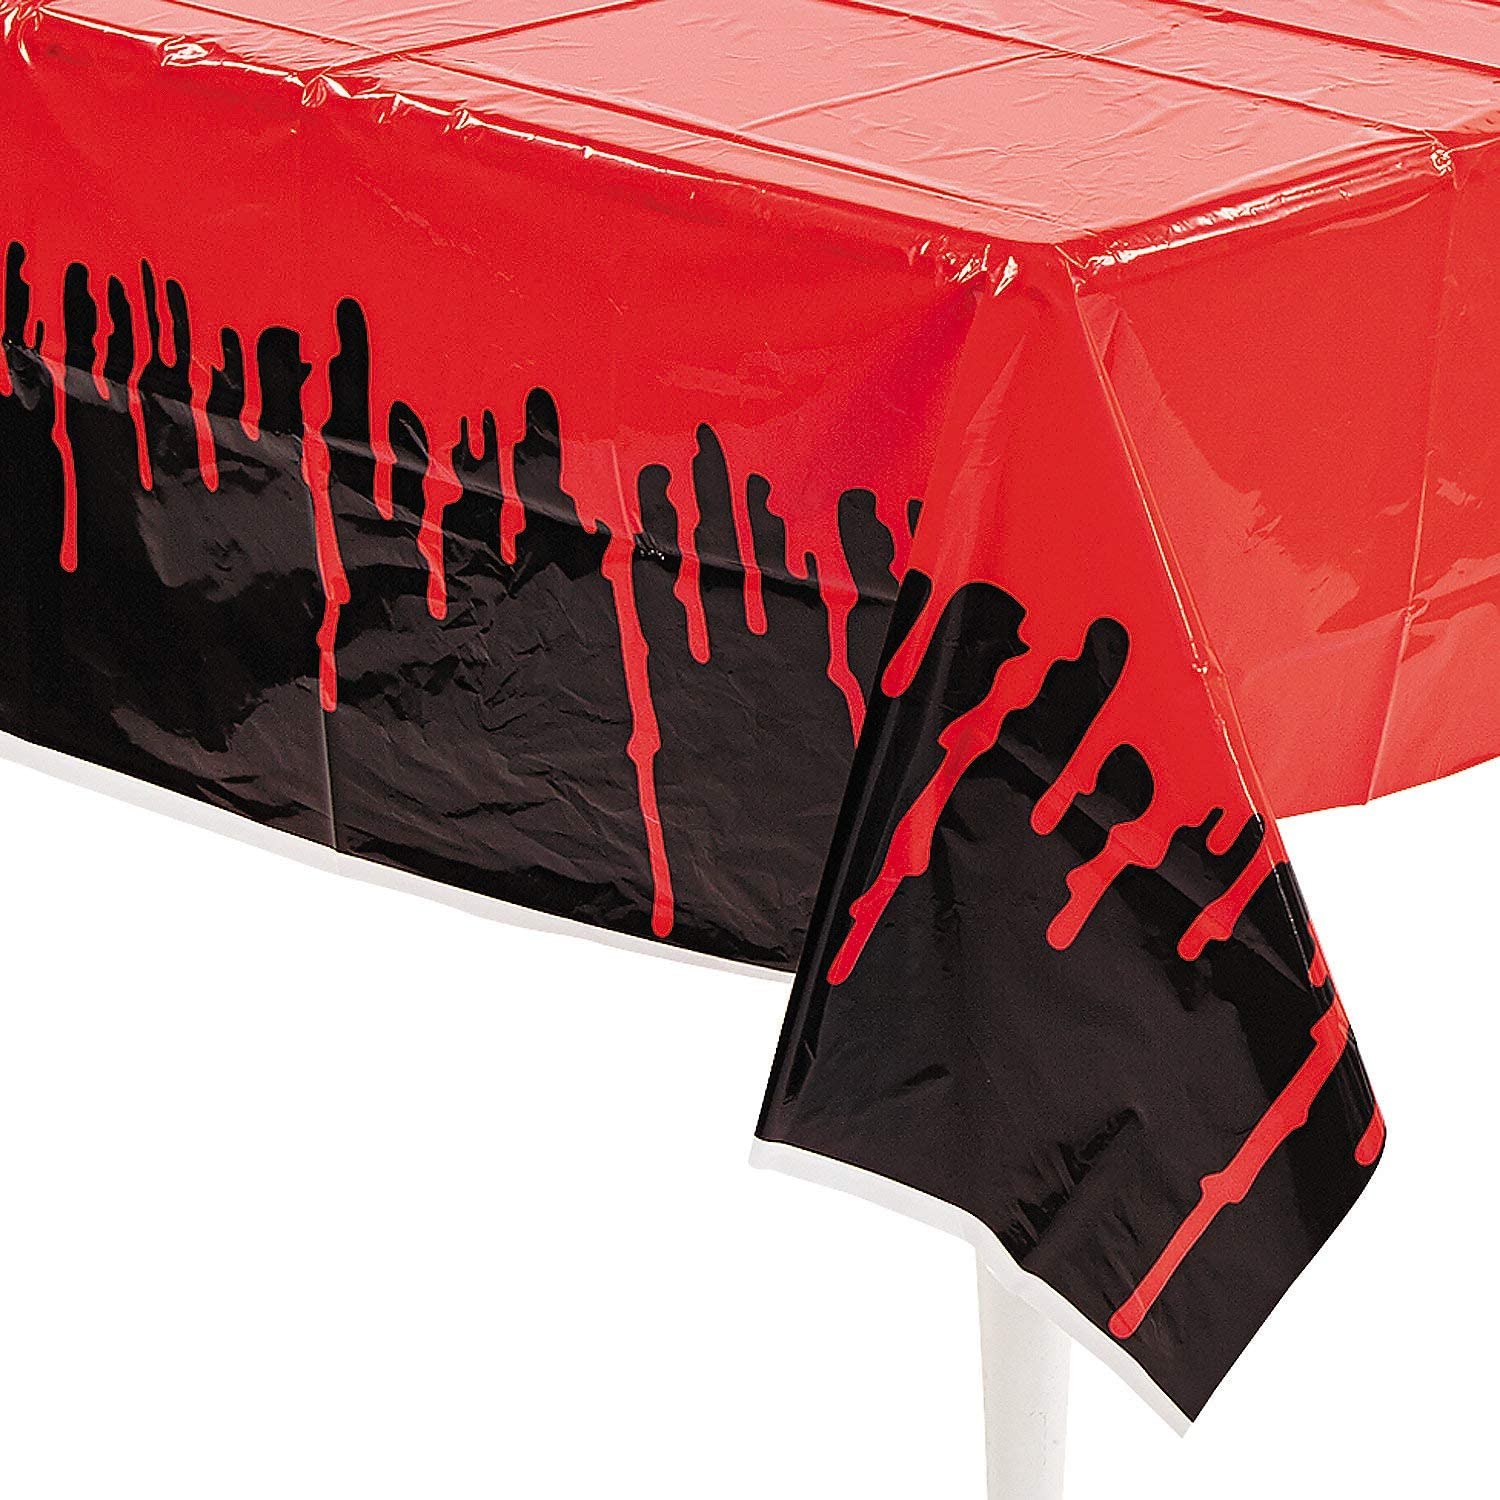 Fun Express - Bloody Max 62% OFF shop Tablecover Halloween Party for Supplies